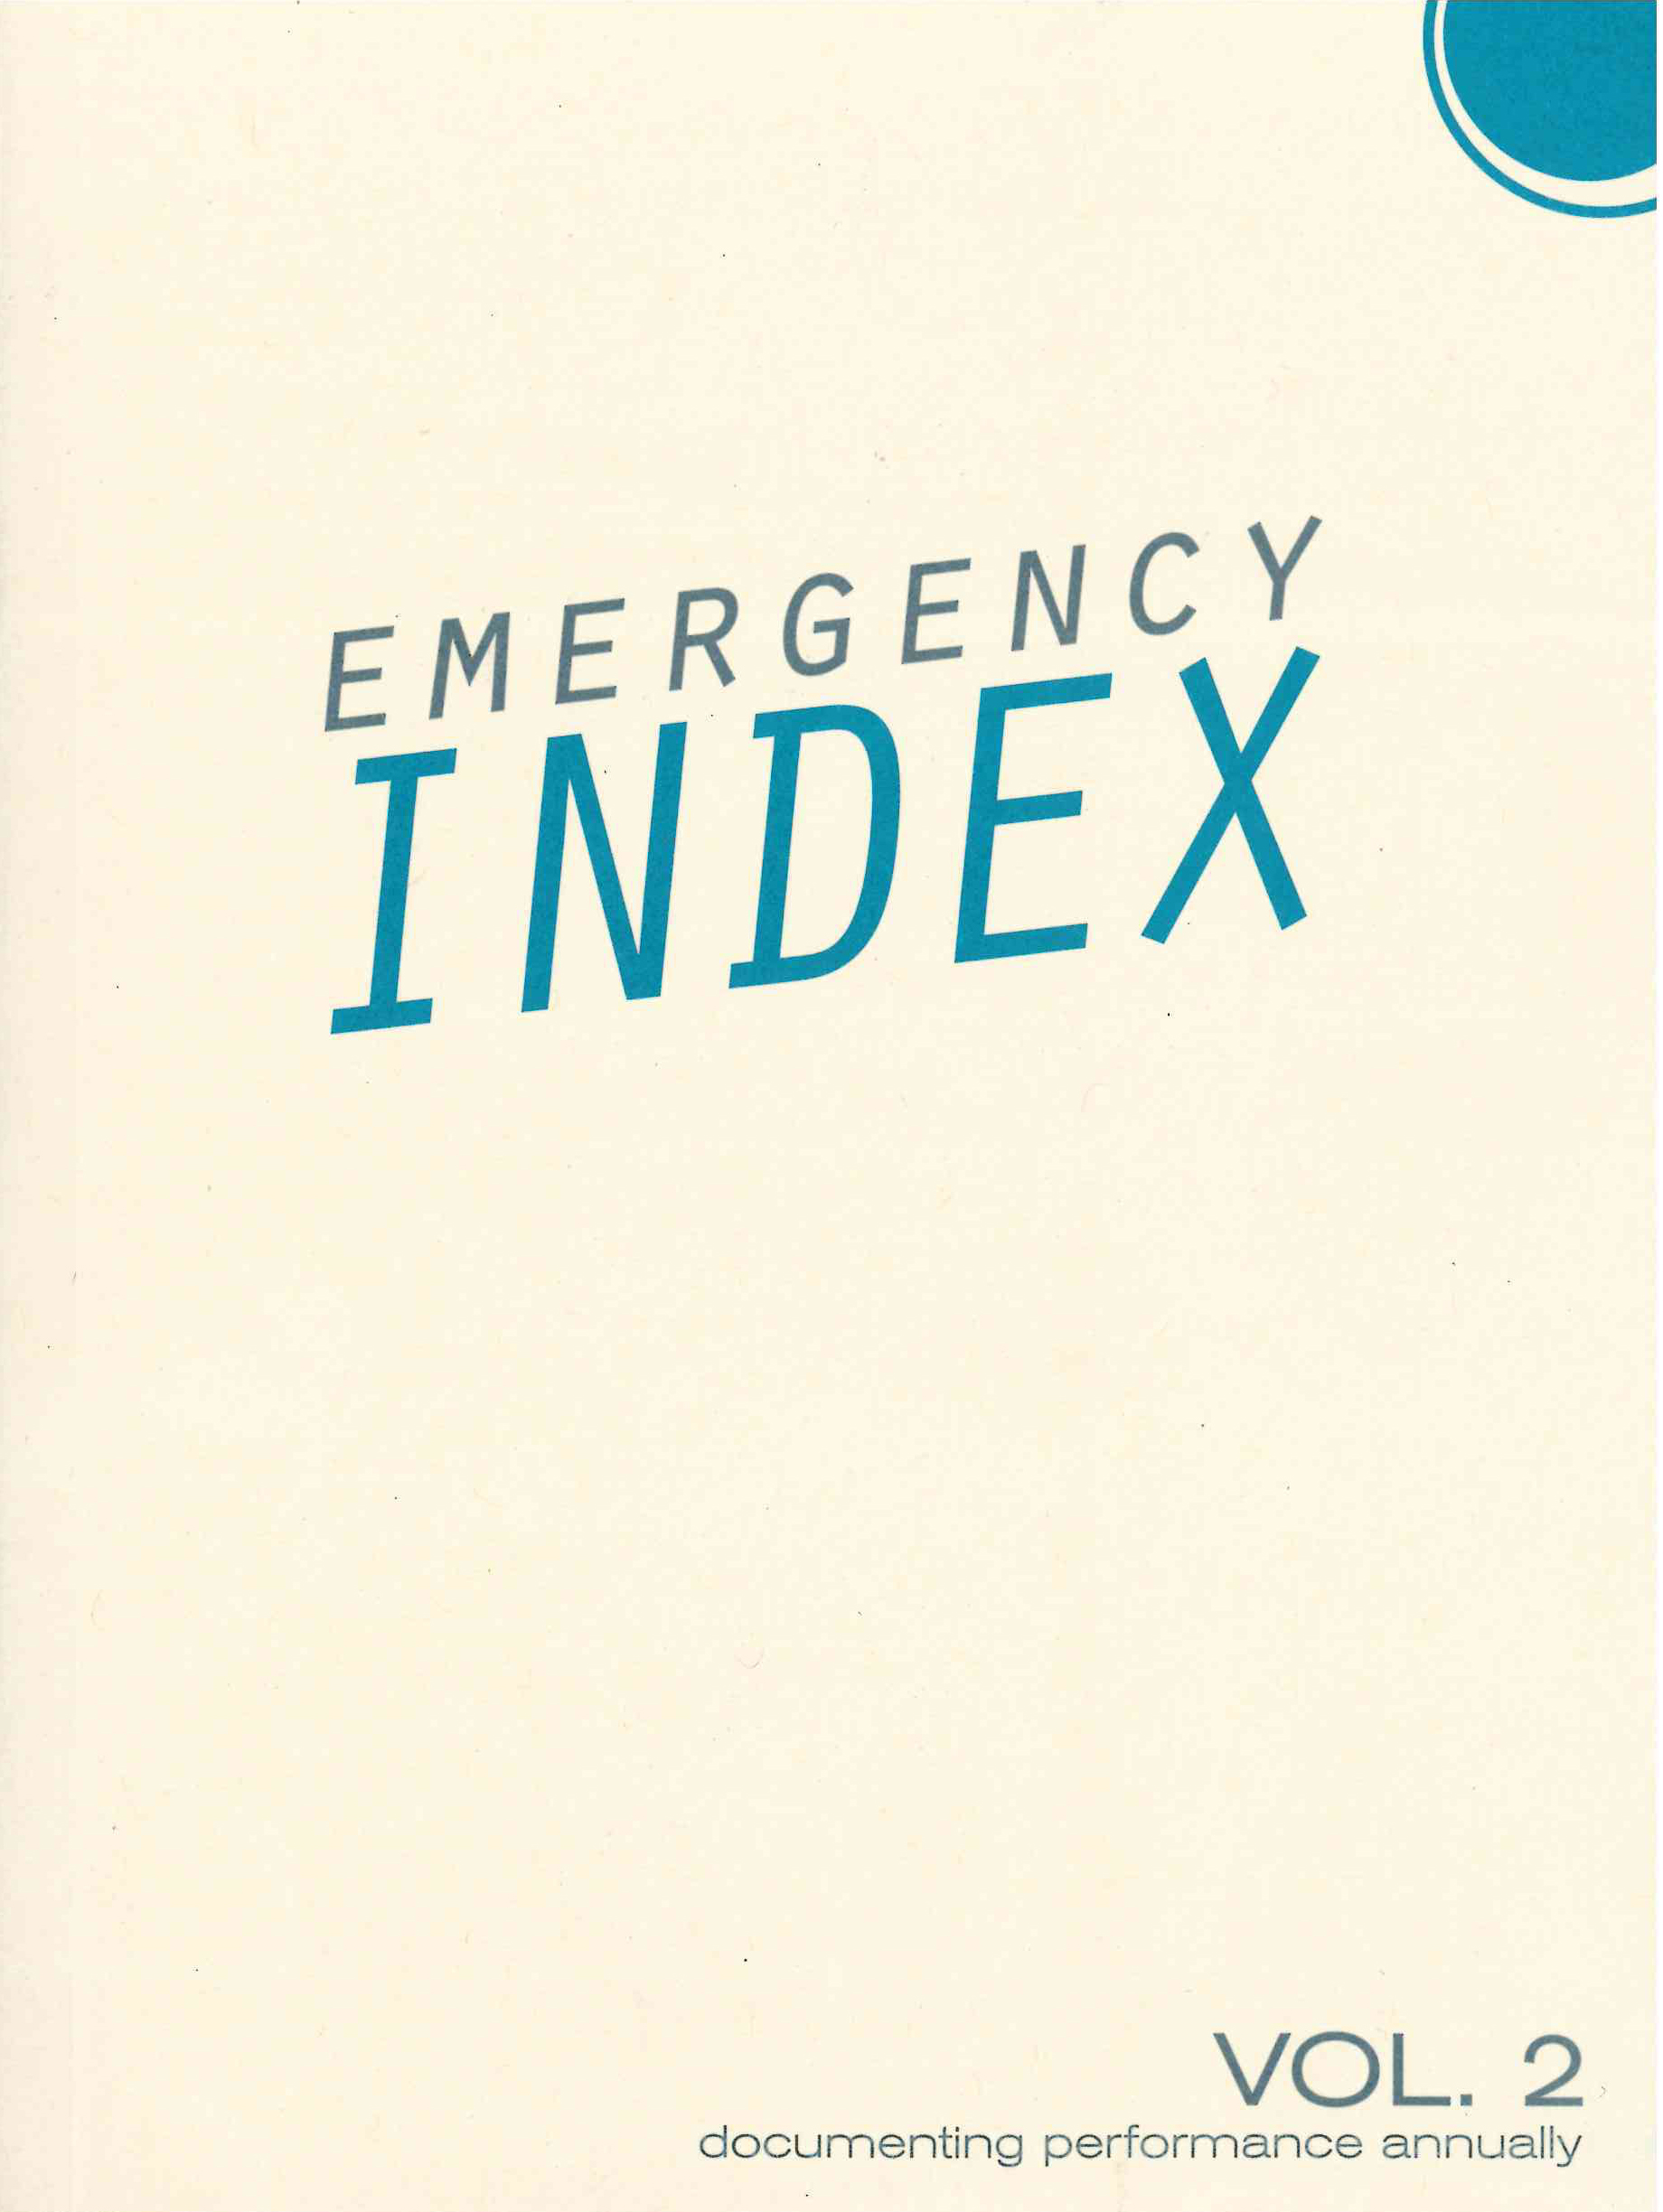 Emergency INDEX, Volume 2: 2012